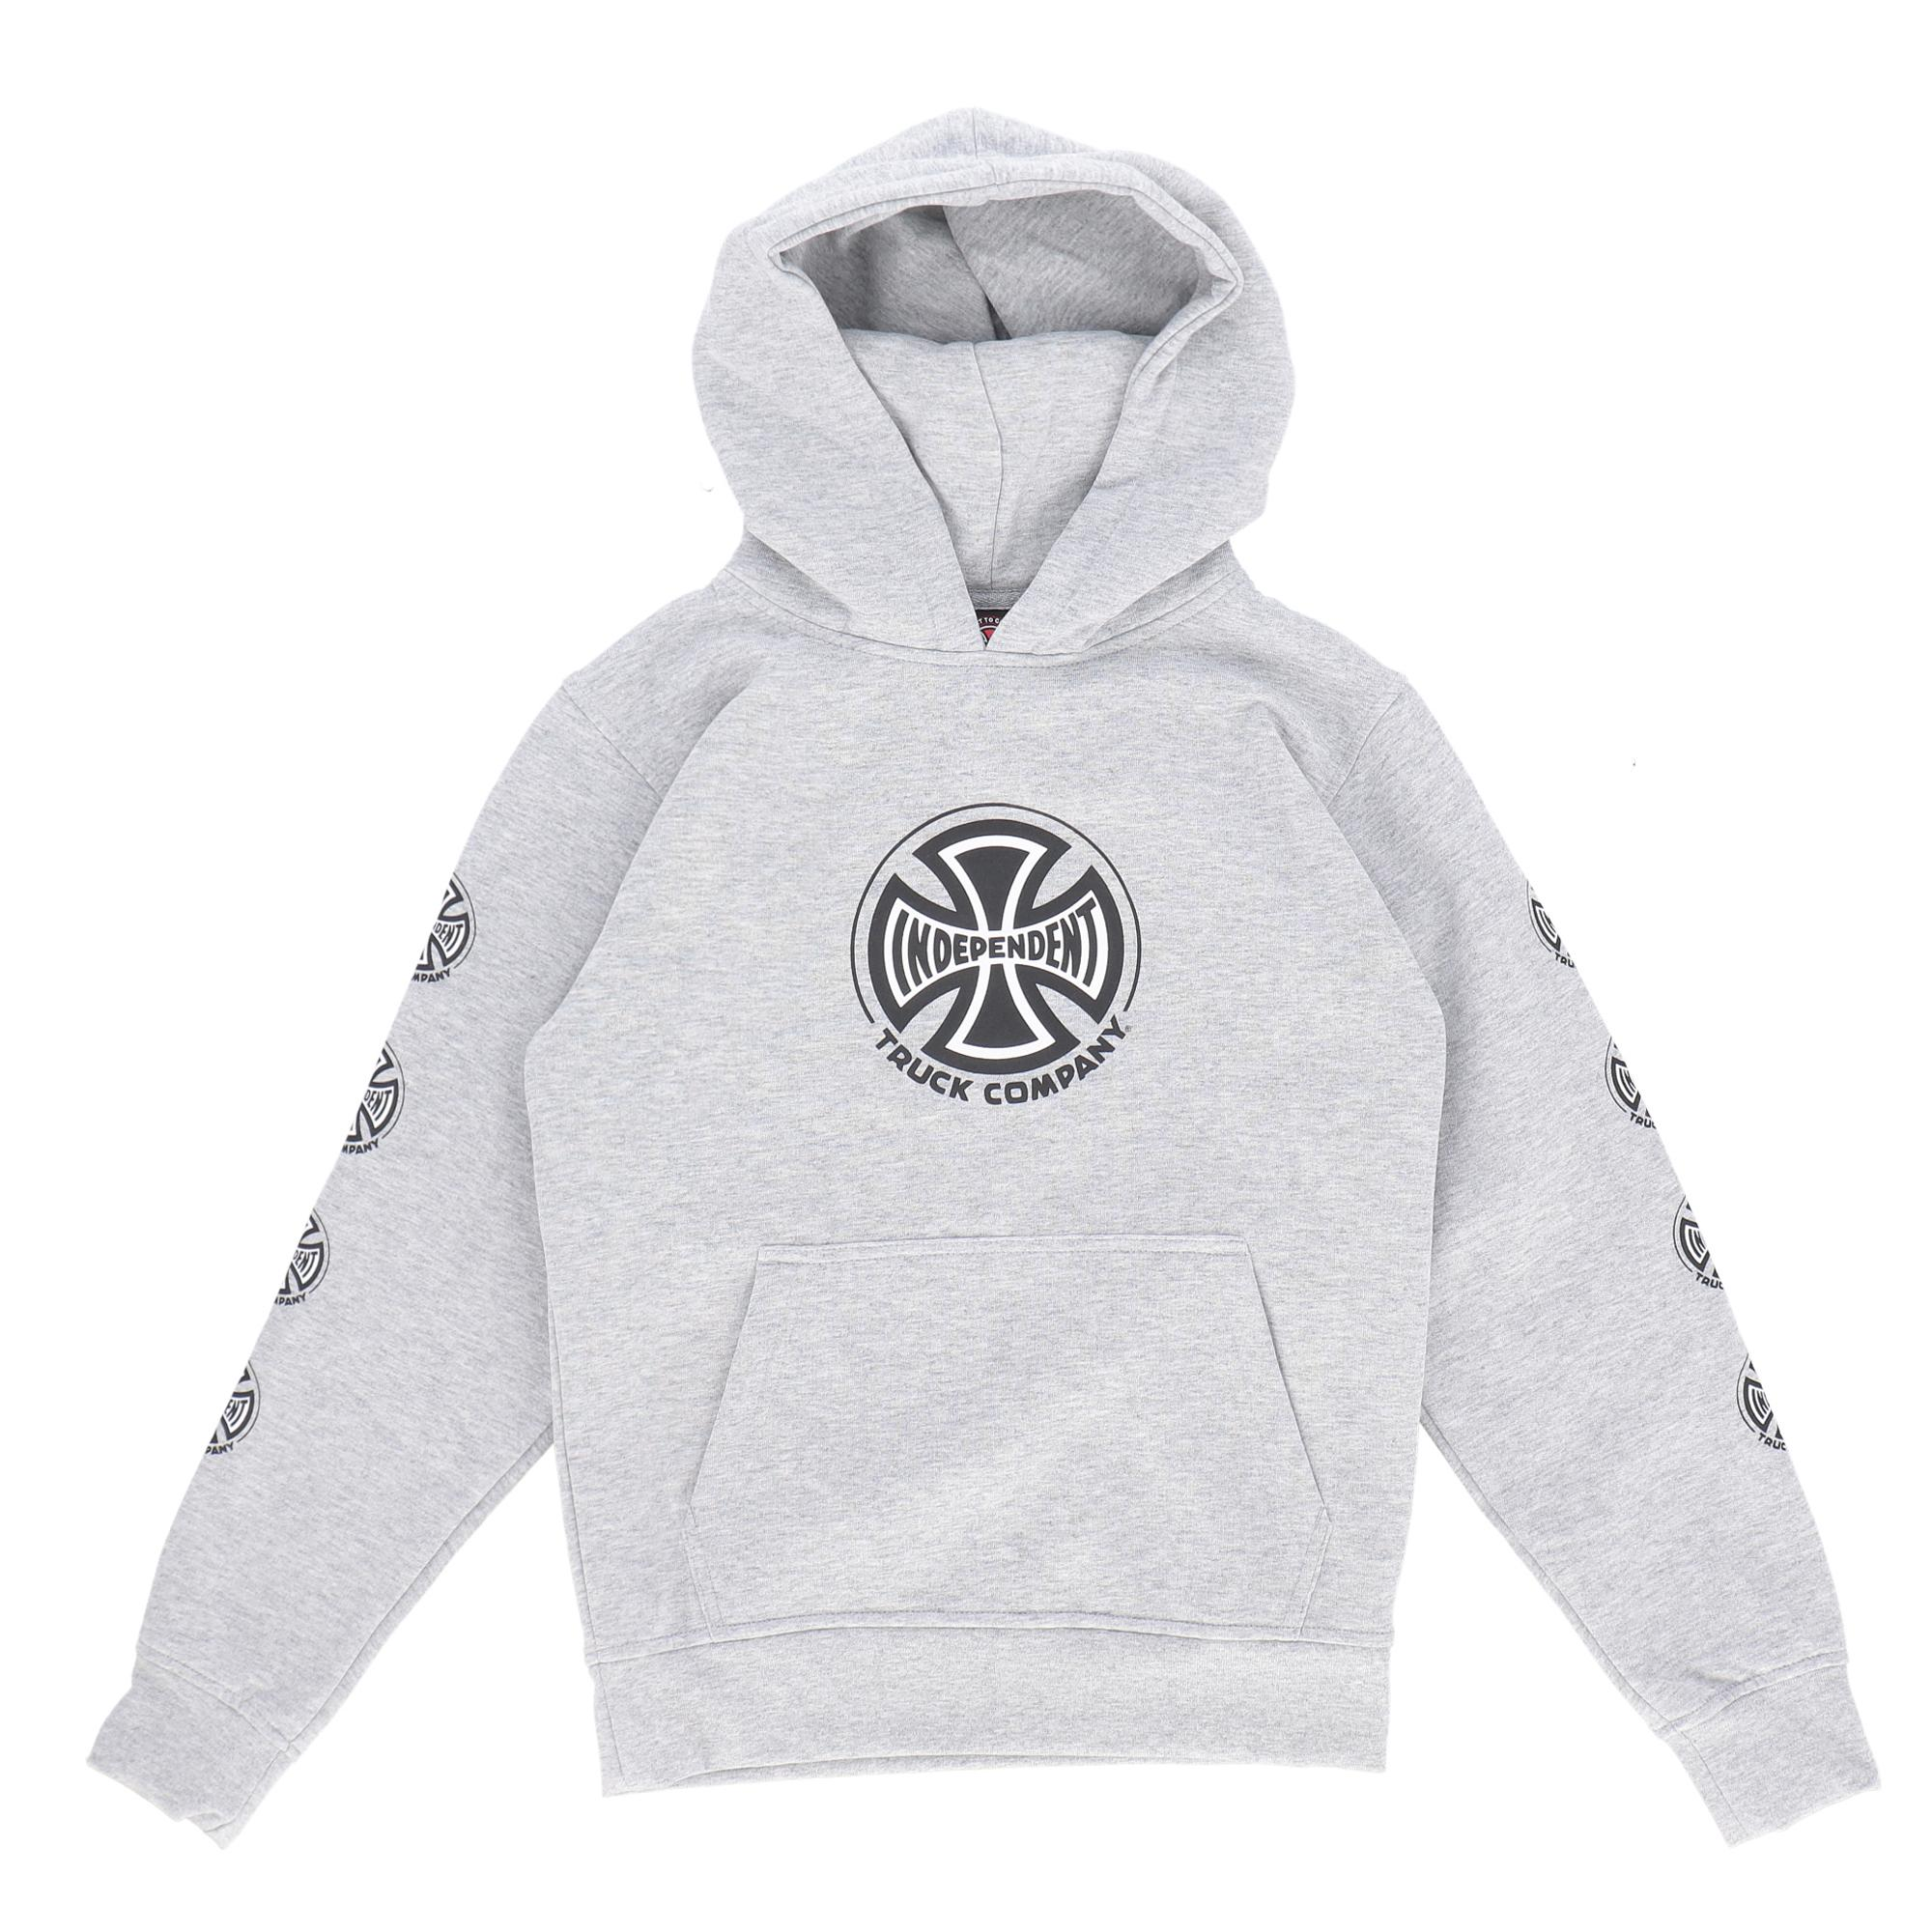 Independent Youth Truck Co. Sleeve Hood HEATHER GREY